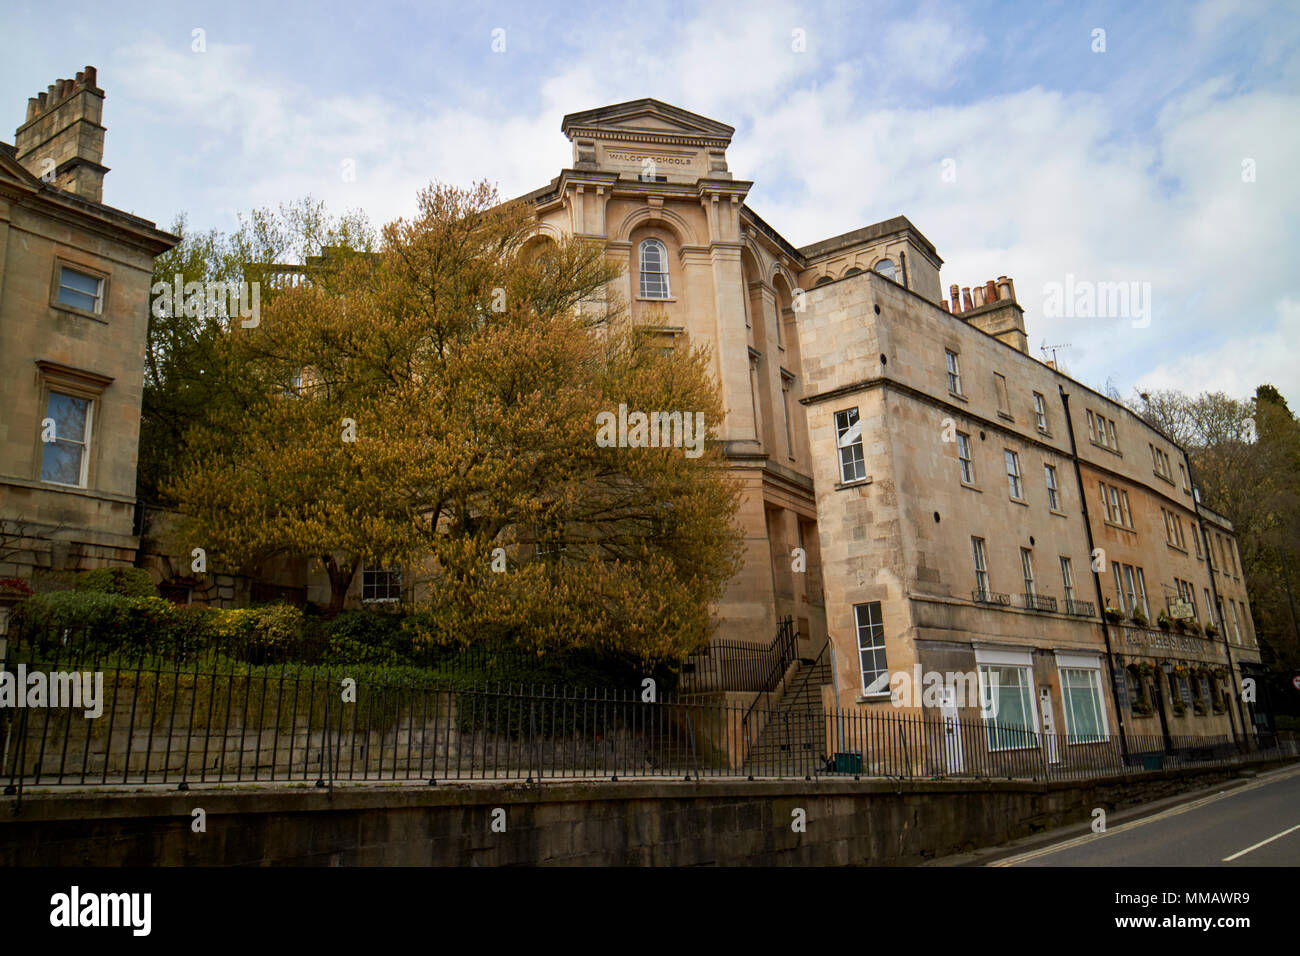 Walcot church hall built as walcot schools and 21 and 22 london road on the paragon a4 old roman road Bath England UK - Stock Image